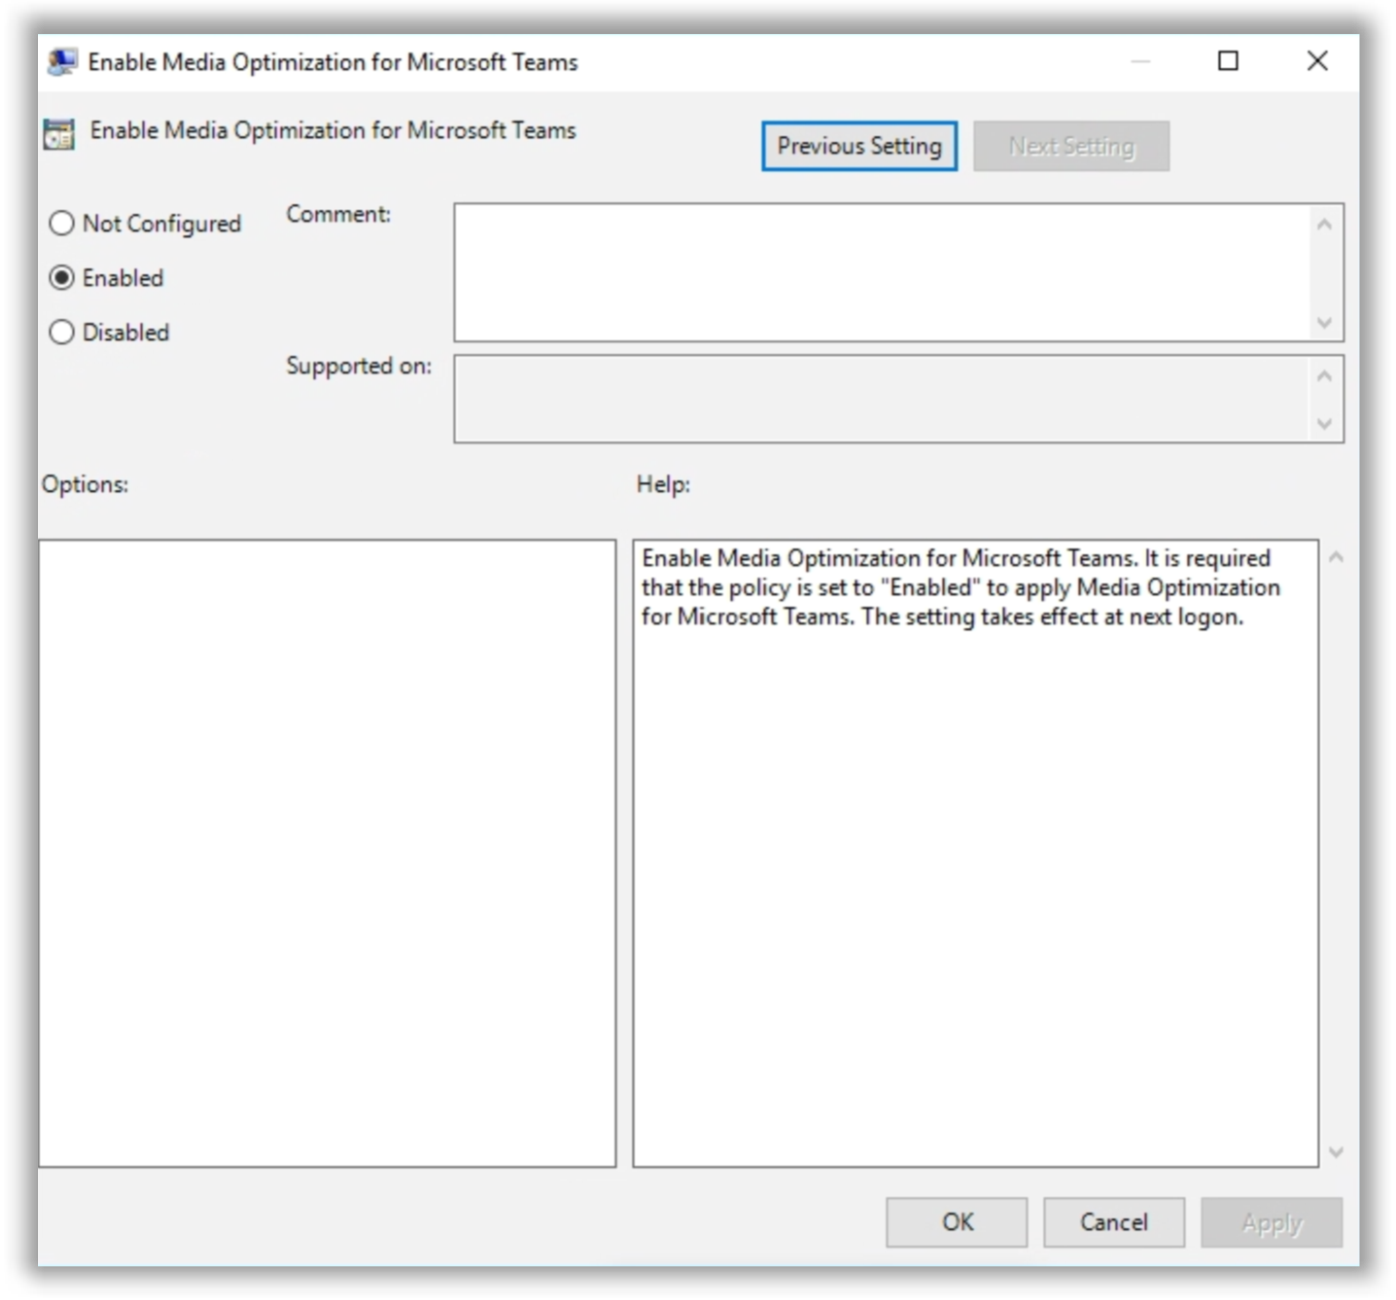 Enable Media Optimization for Microsoft Teams policy setting